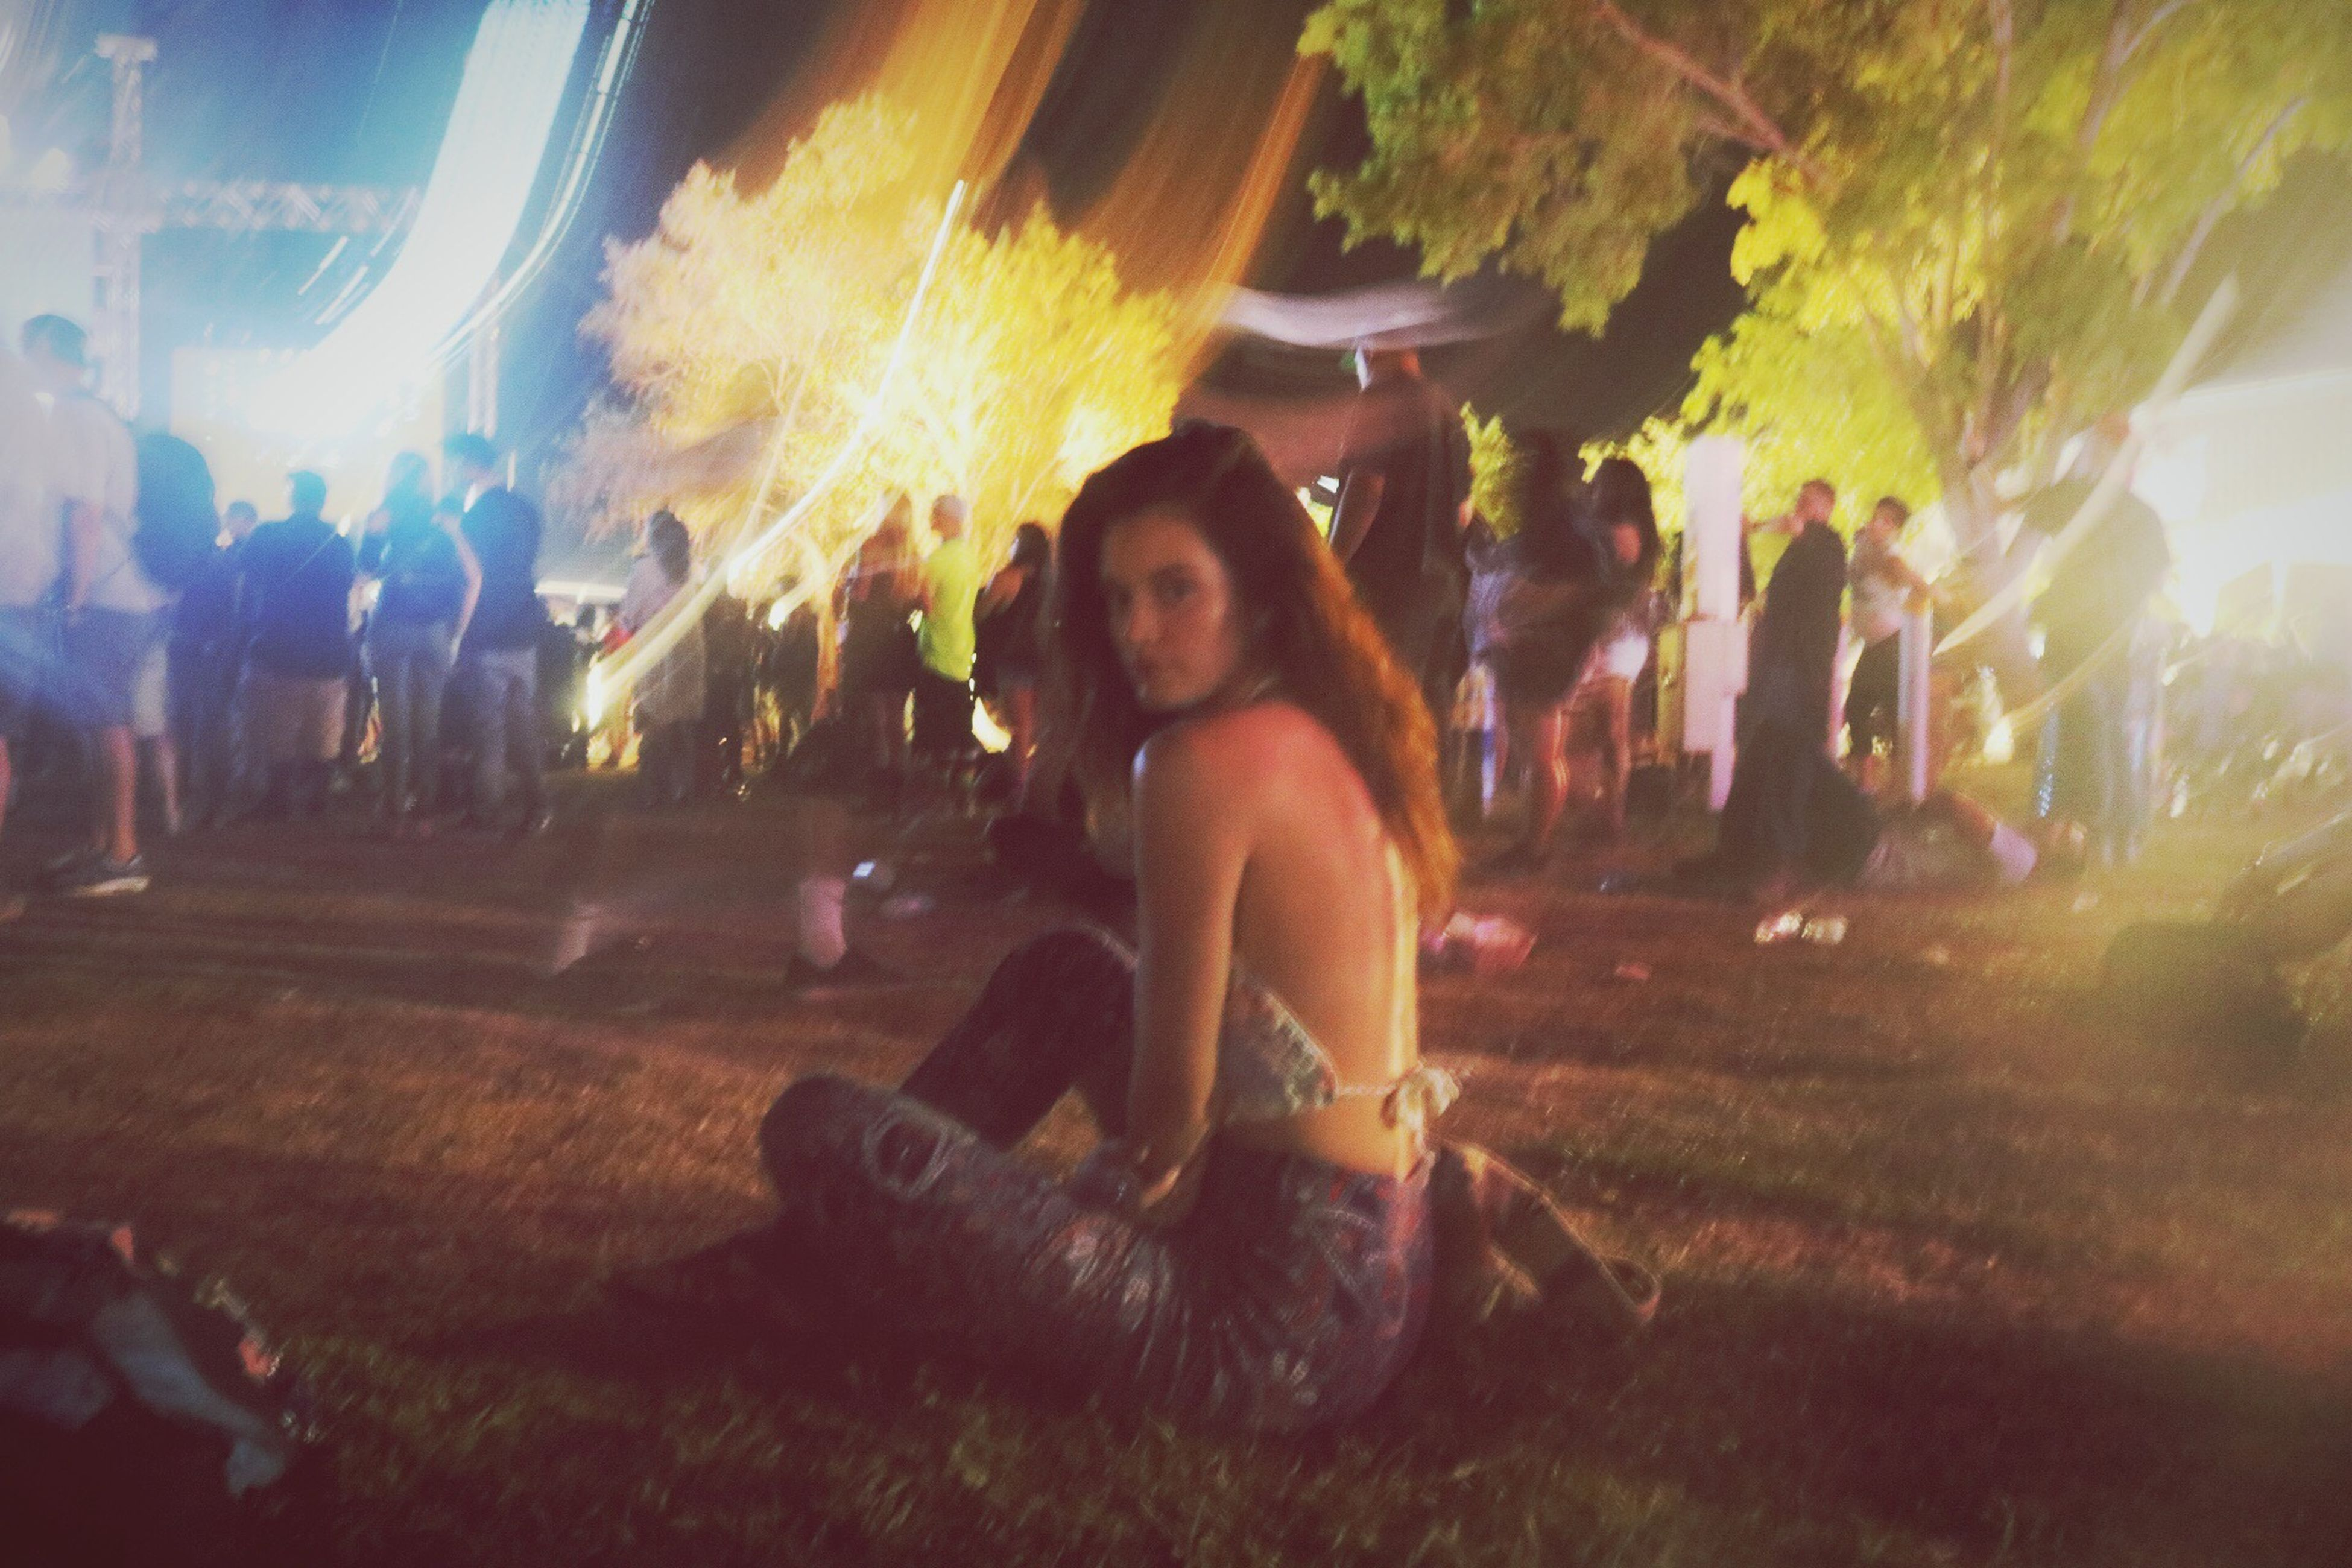 lifestyles, leisure activity, night, enjoyment, illuminated, sunbeam, lens flare, fun, medium group of people, casual clothing, crowd, outdoors, glowing, mixed age range, smoke - physical structure